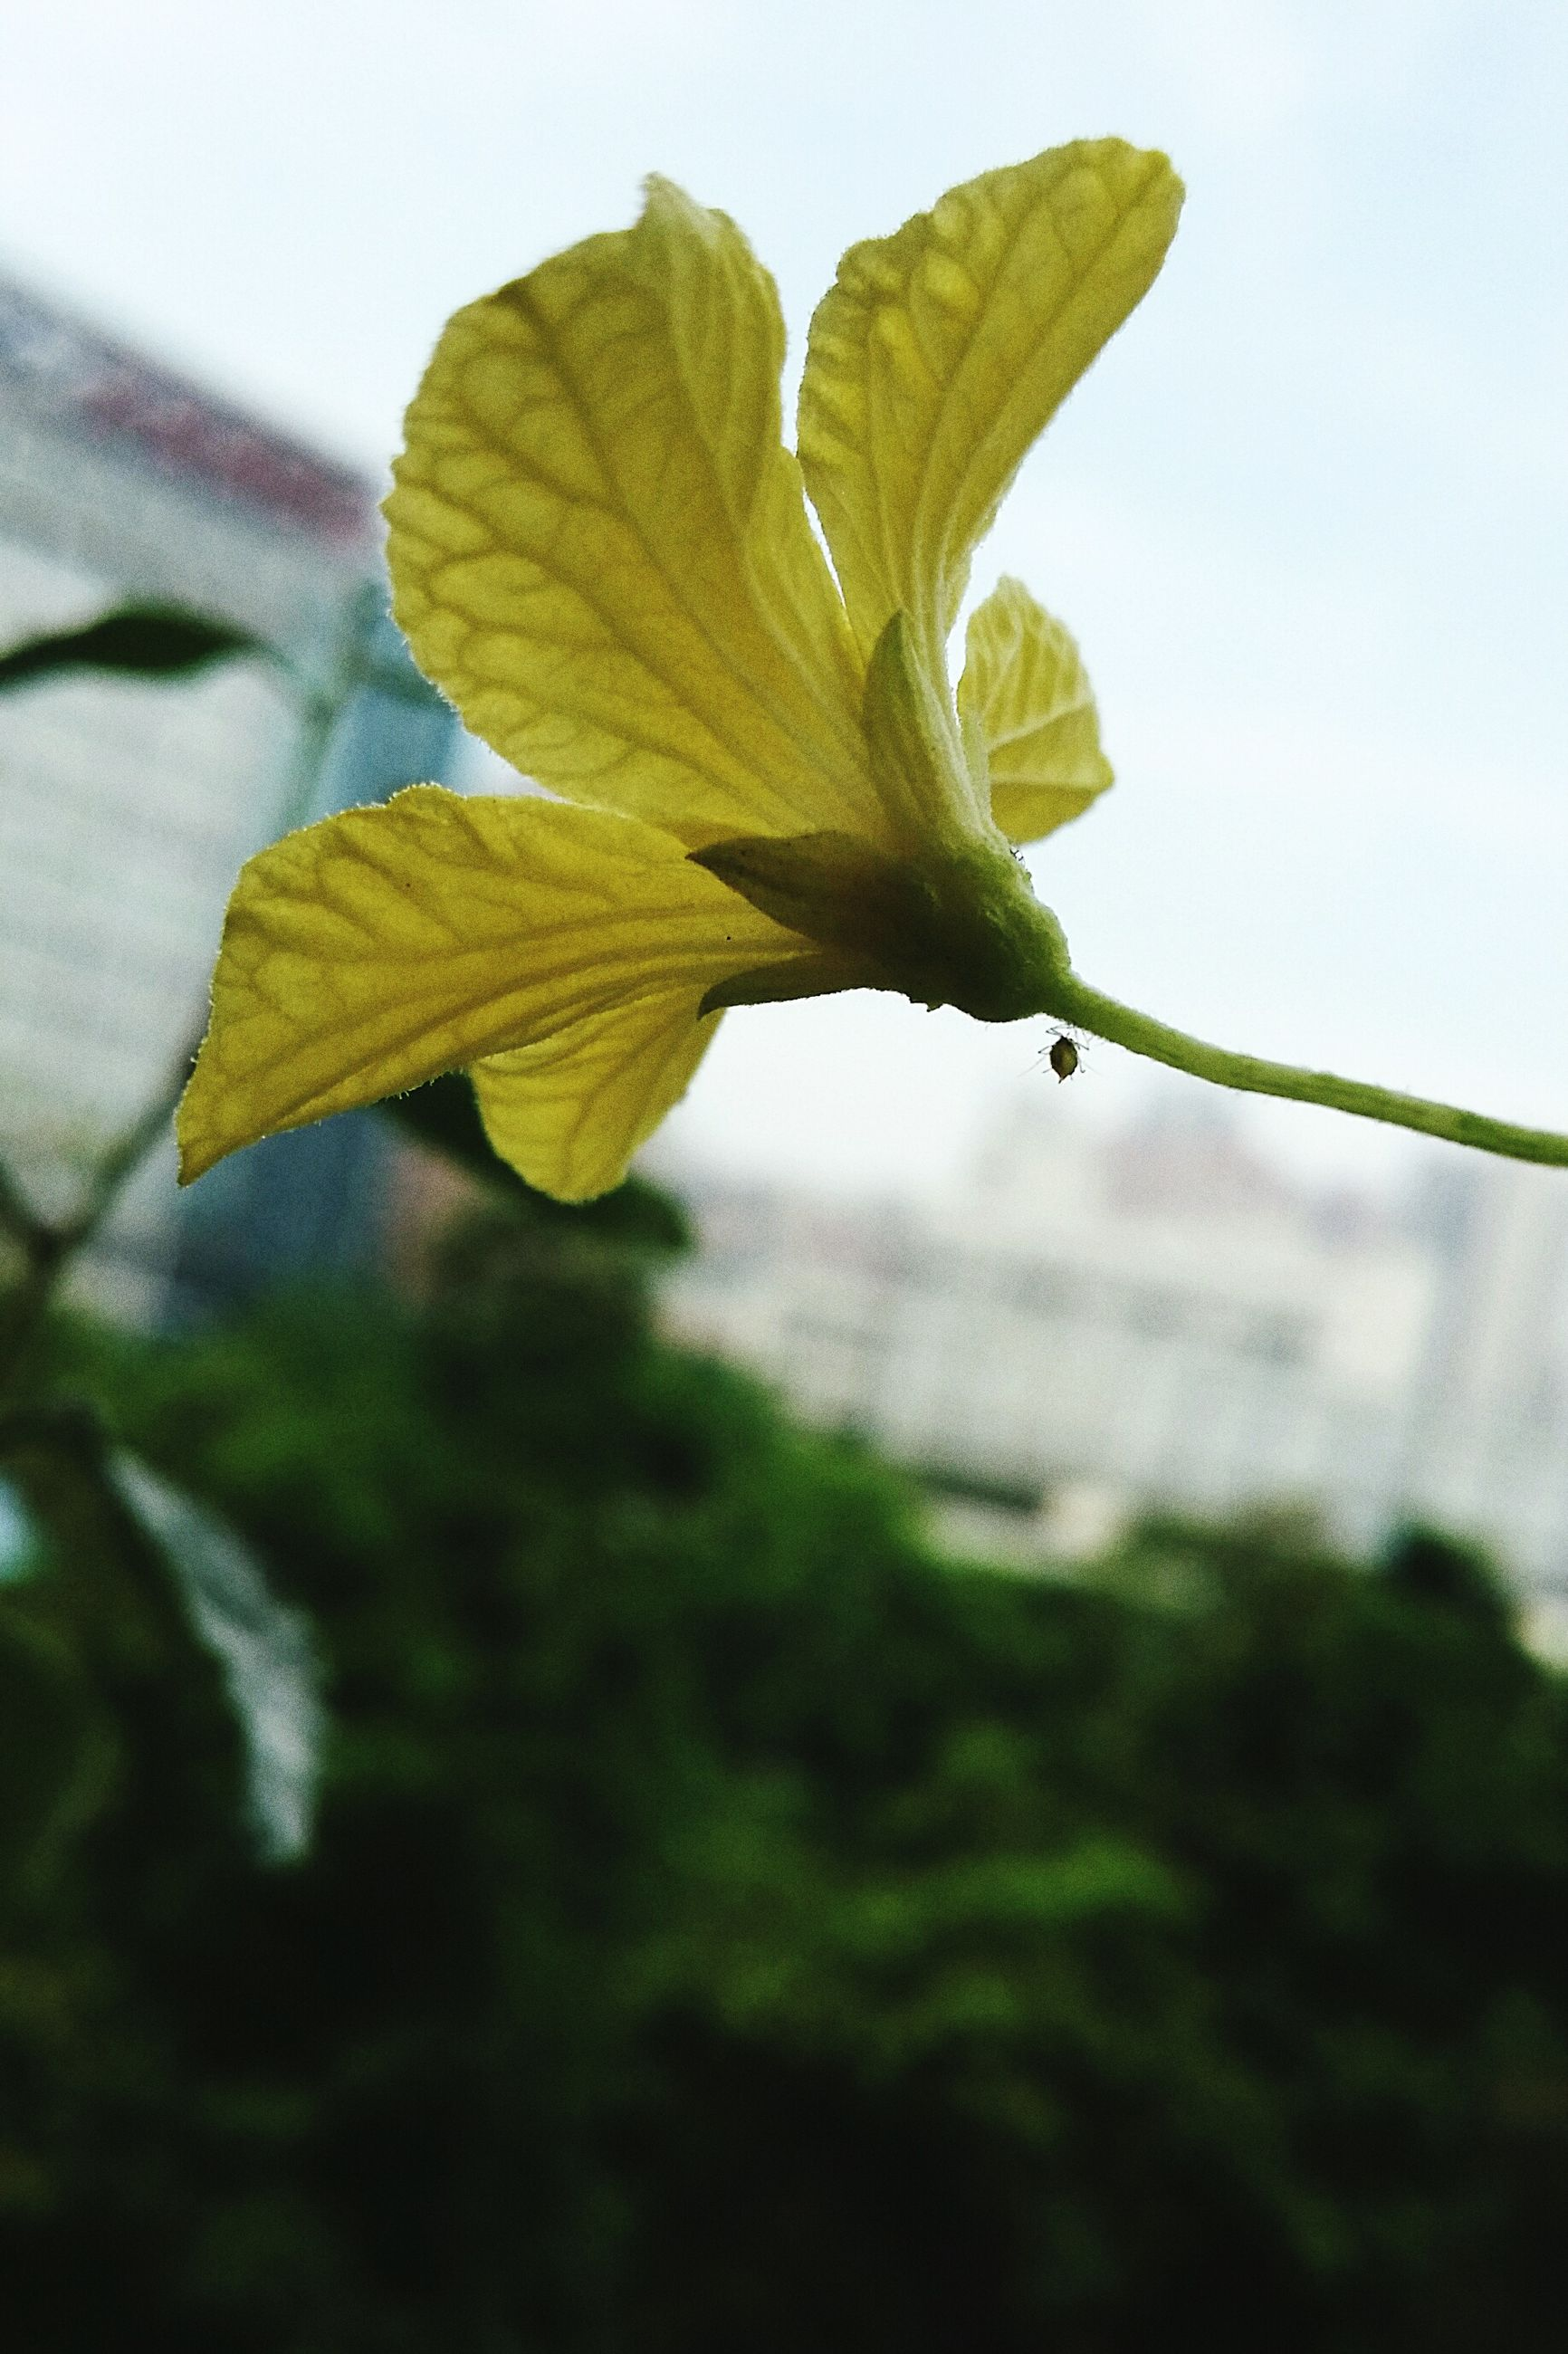 leaf, close-up, fragility, growth, focus on foreground, freshness, nature, beauty in nature, stem, season, flower, plant, leaf vein, sky, twig, day, wet, drop, outdoors, botany